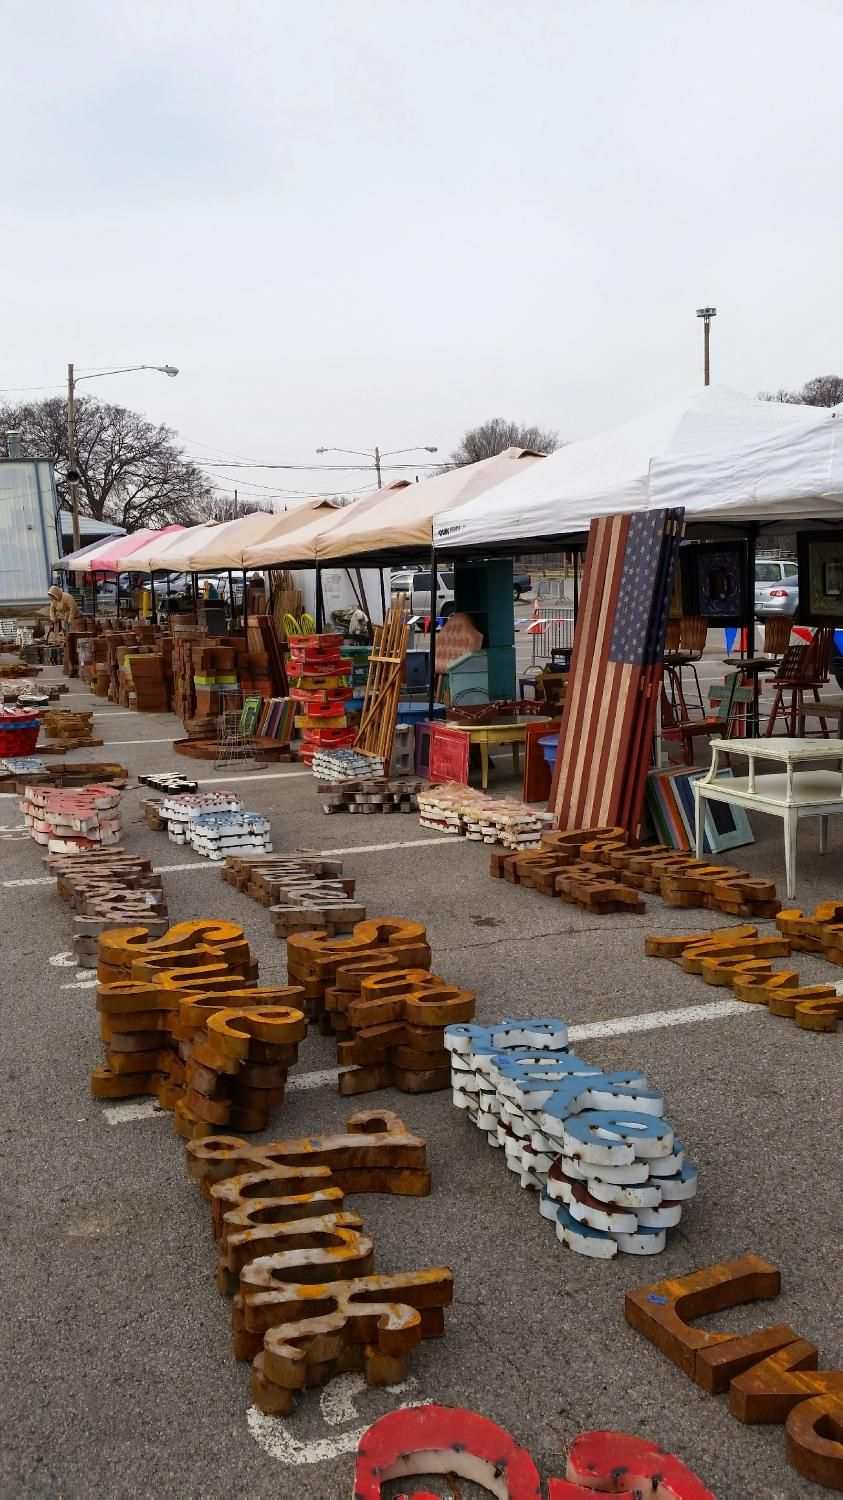 Nashville Flea Market 2018 All You Need To Know Before You Go